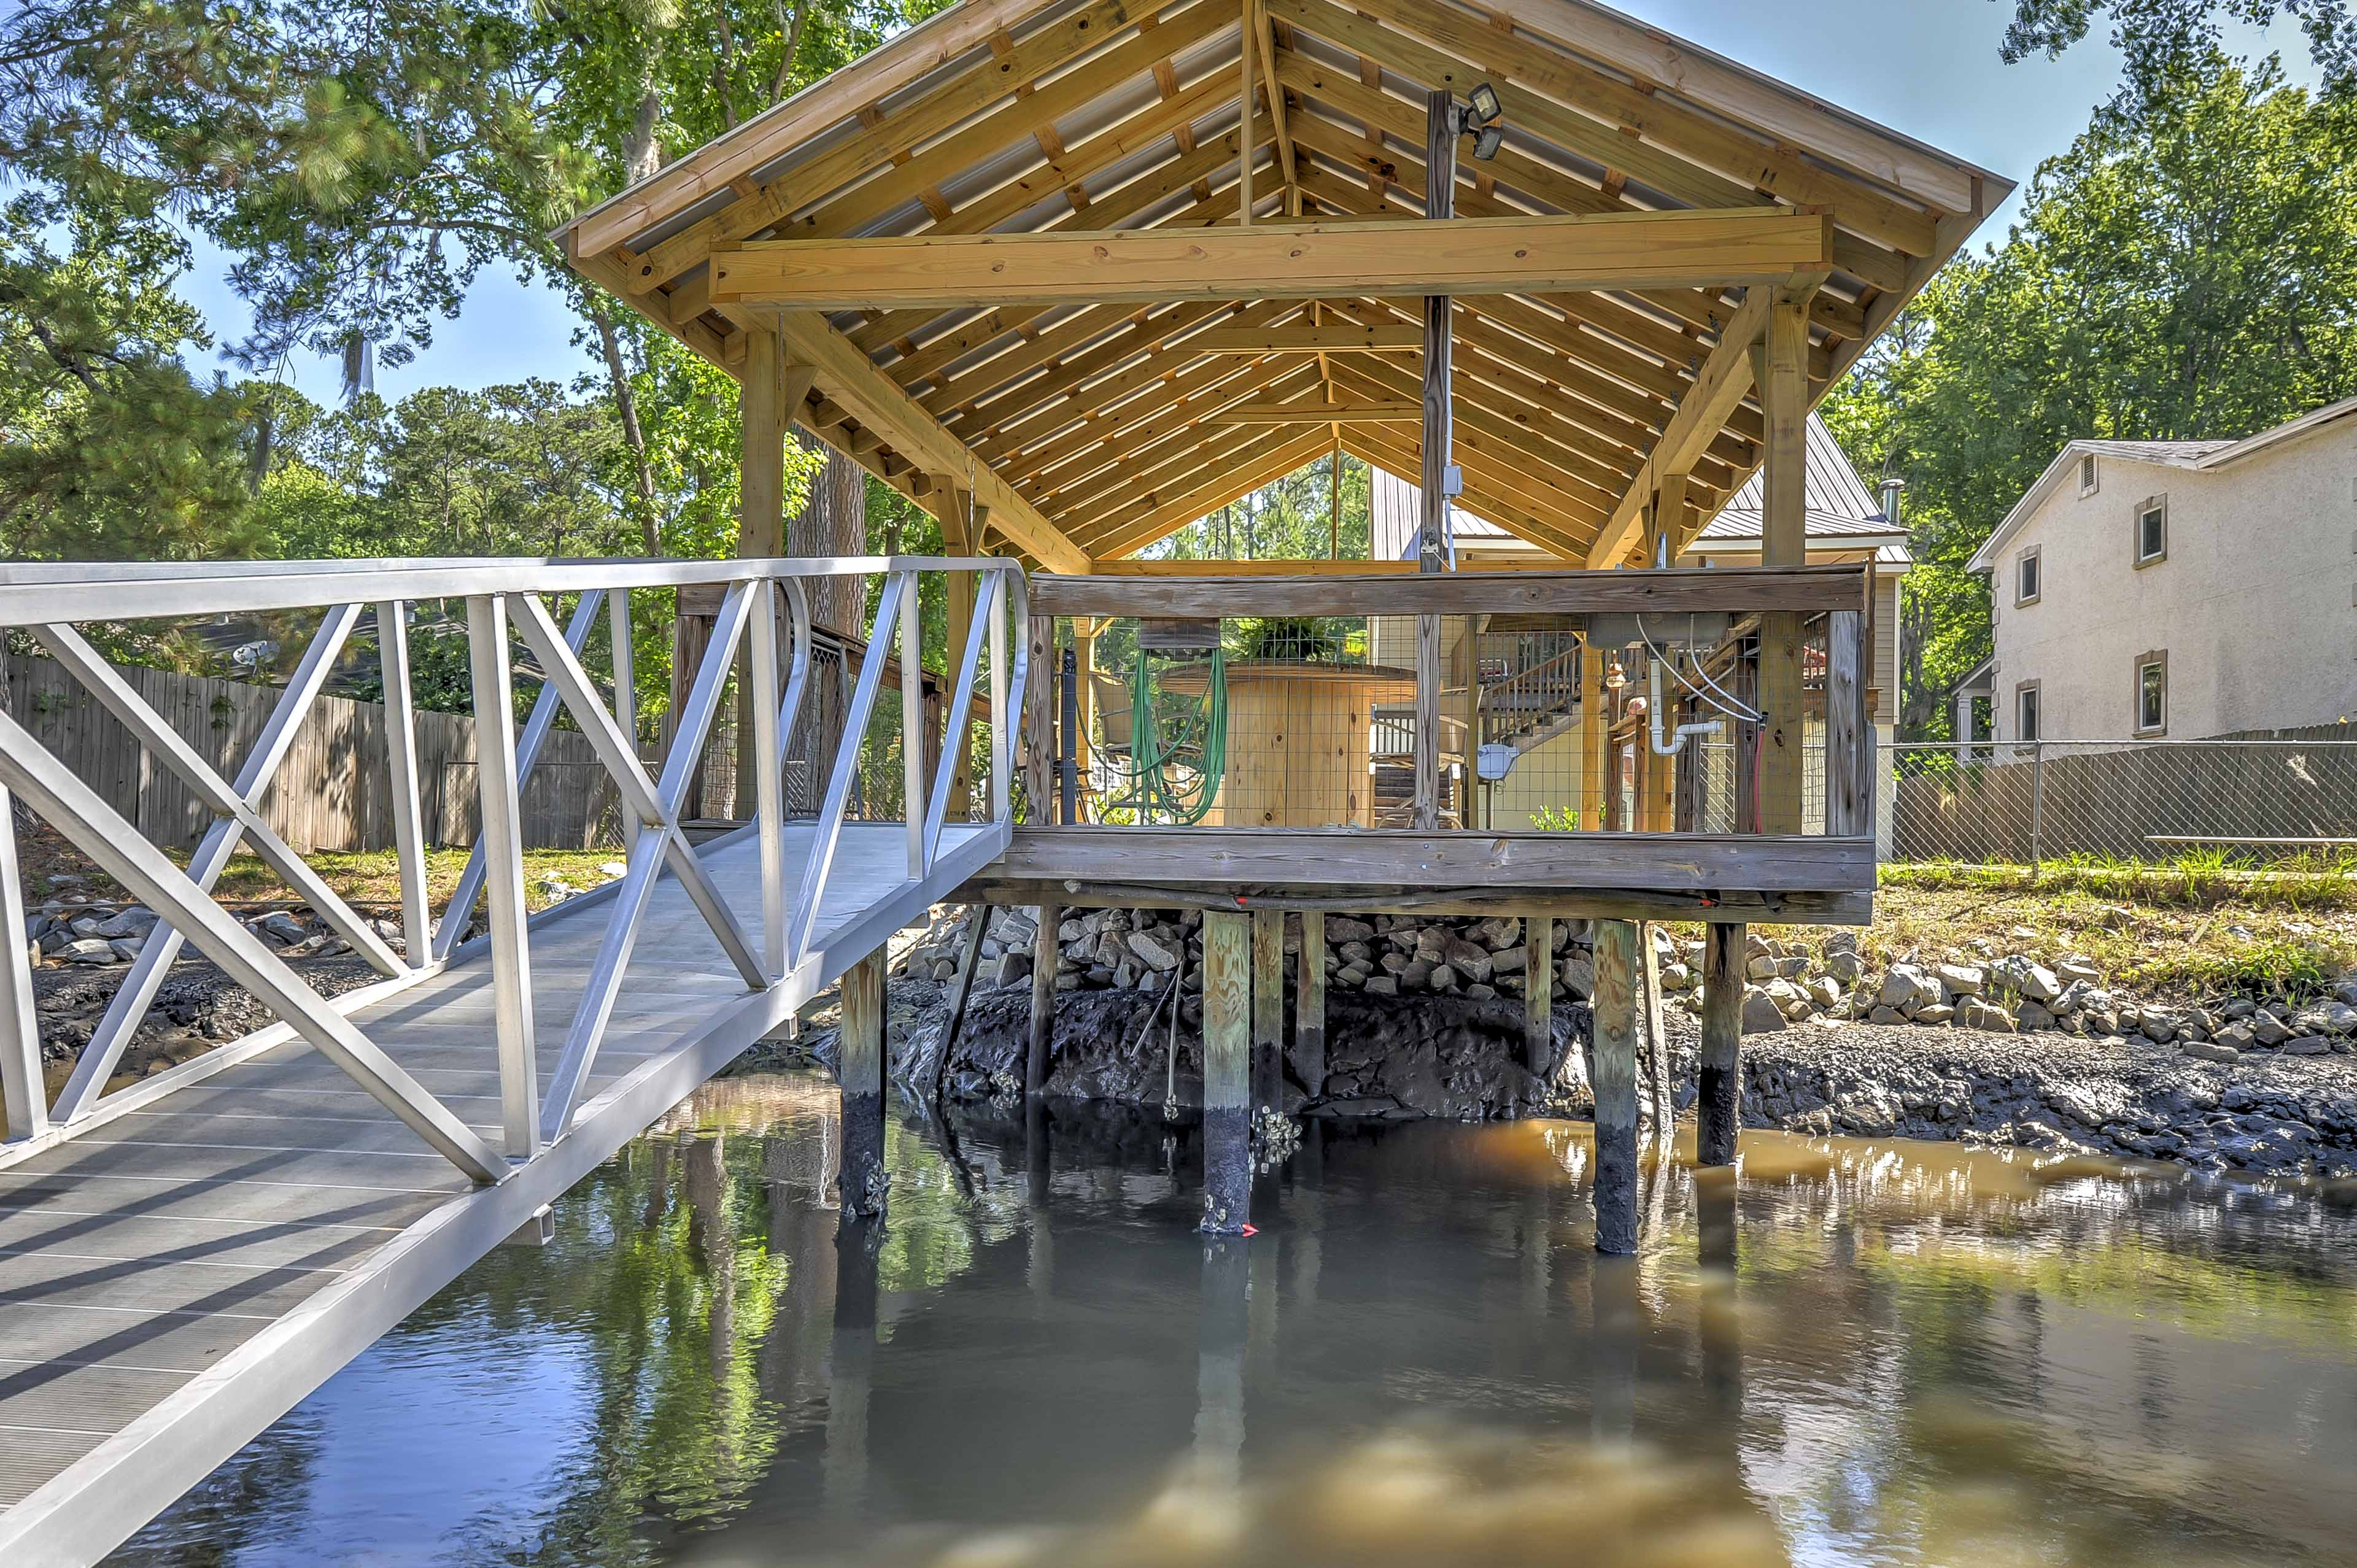 The dock can even accommodate your 21-foot boat!